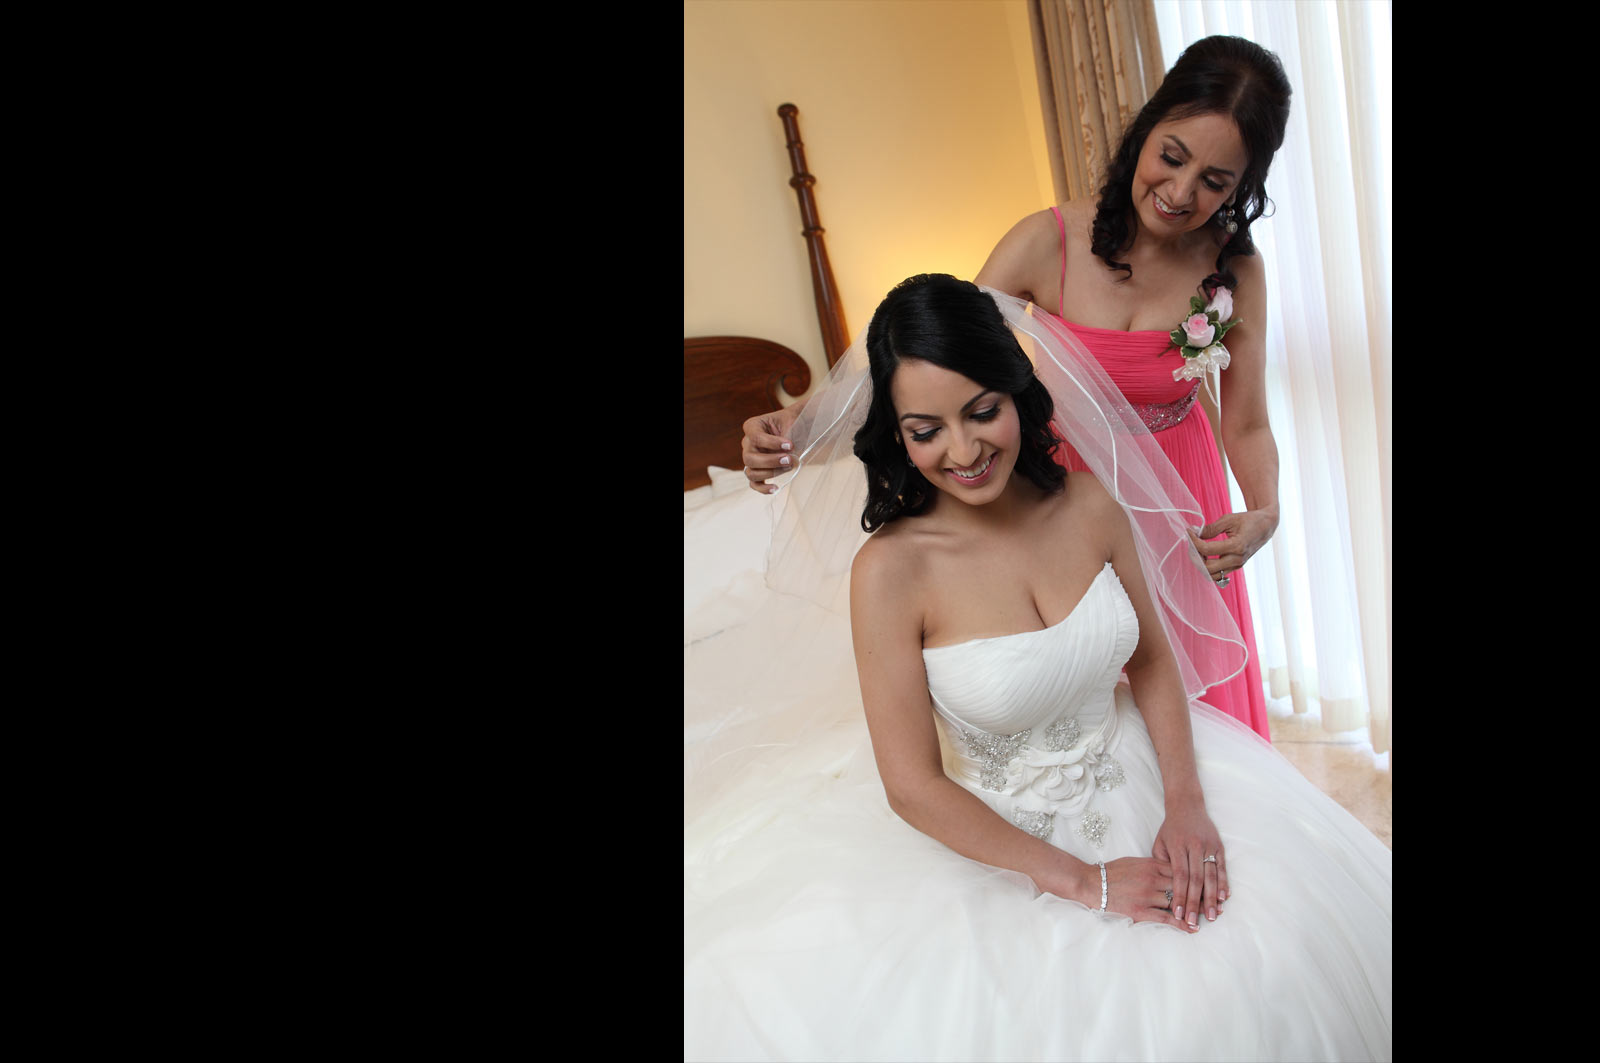 Mom and Daughter - Wedding Day - Bride's Mom